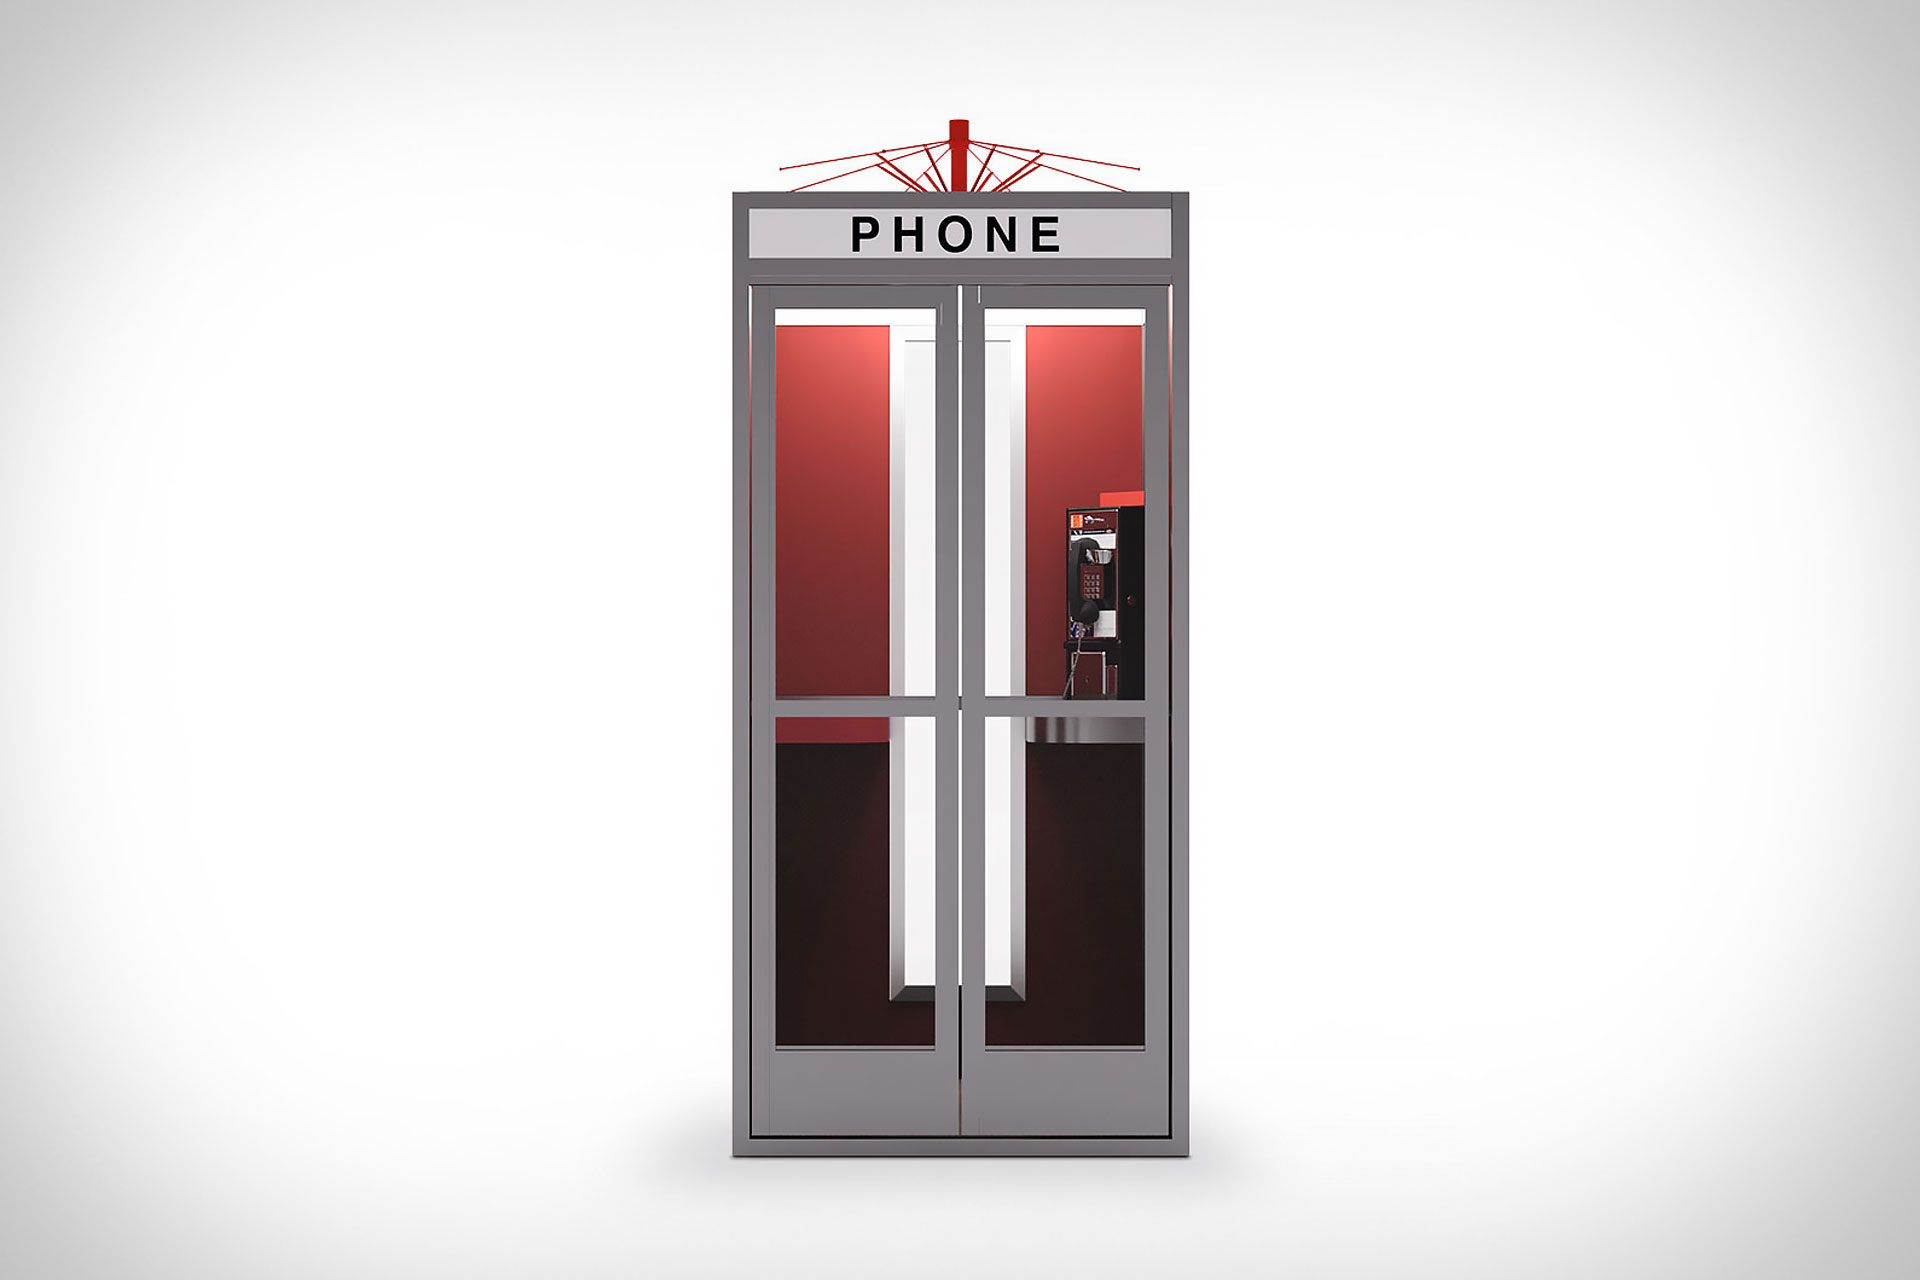 bill ted phone booth 25 Totally Non-Heinous Facts About Bill & Ted's Excellent Adventure!